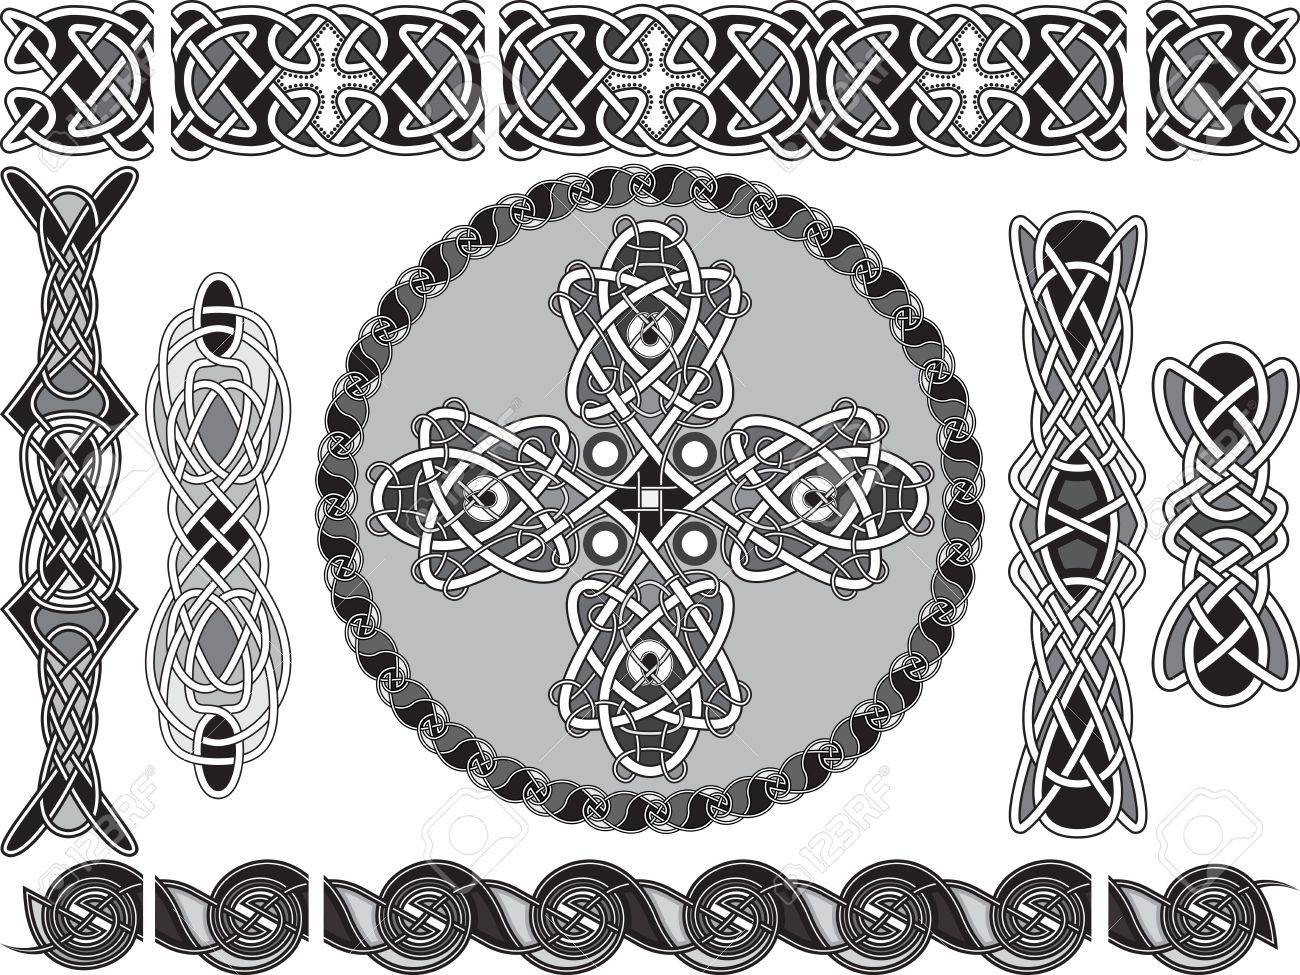 Elements of design in traditional celtic style a vector Stock Vector - 17330186